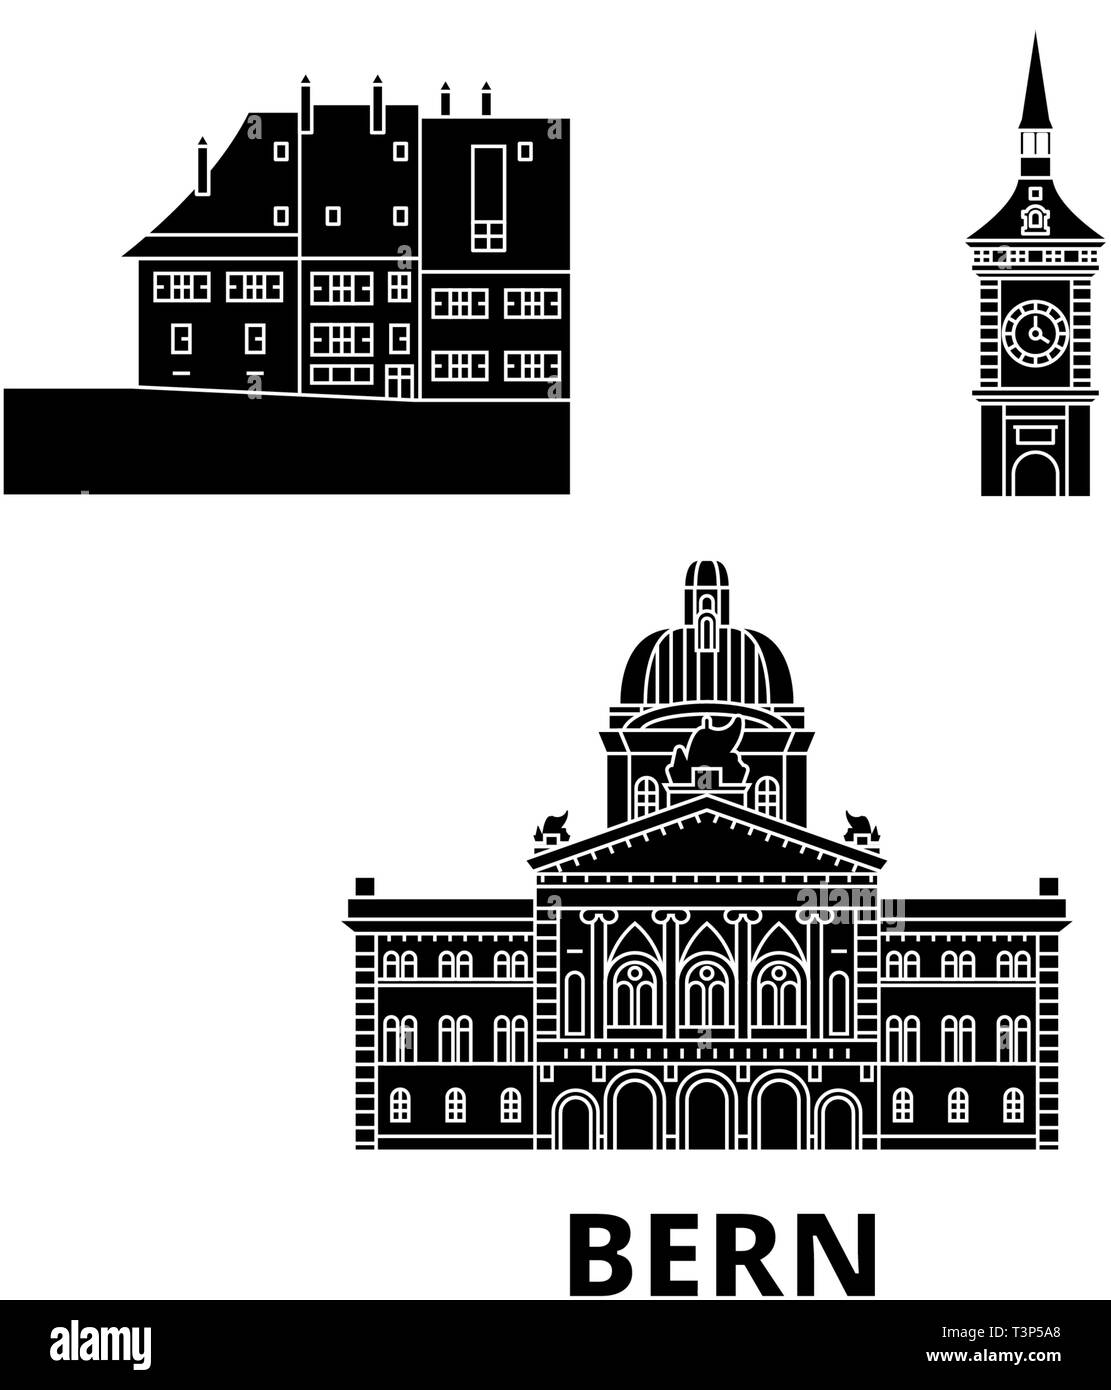 Switzerland, Bern flat travel skyline set. Switzerland, Bern black city vector illustration, symbol, travel sights, landmarks. - Stock Image